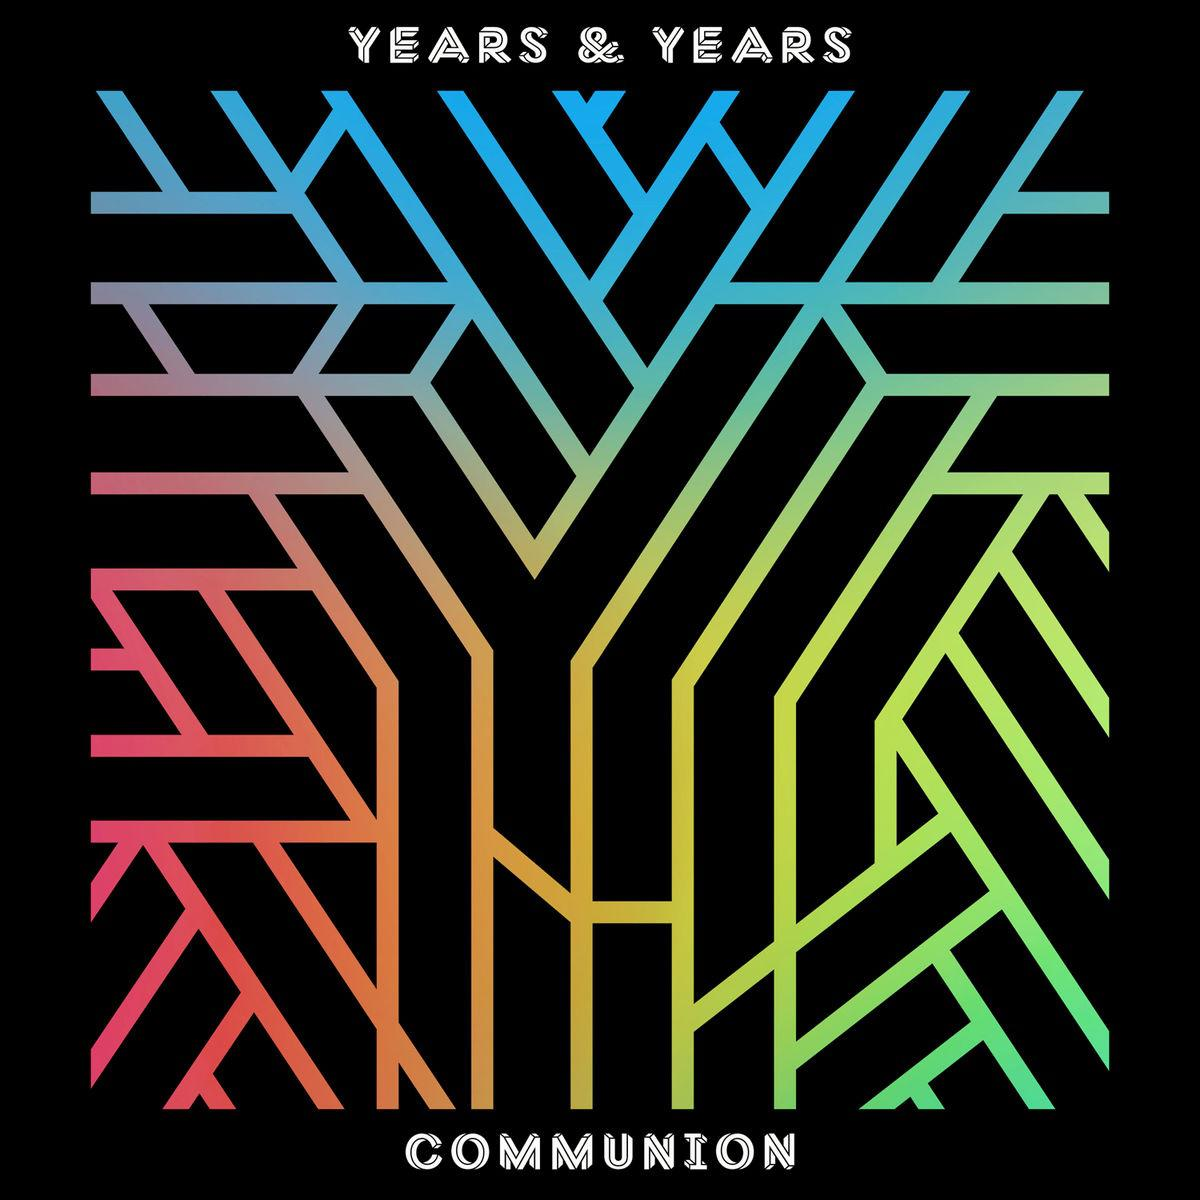 Years & Years - Eyes Shut 英国腐风